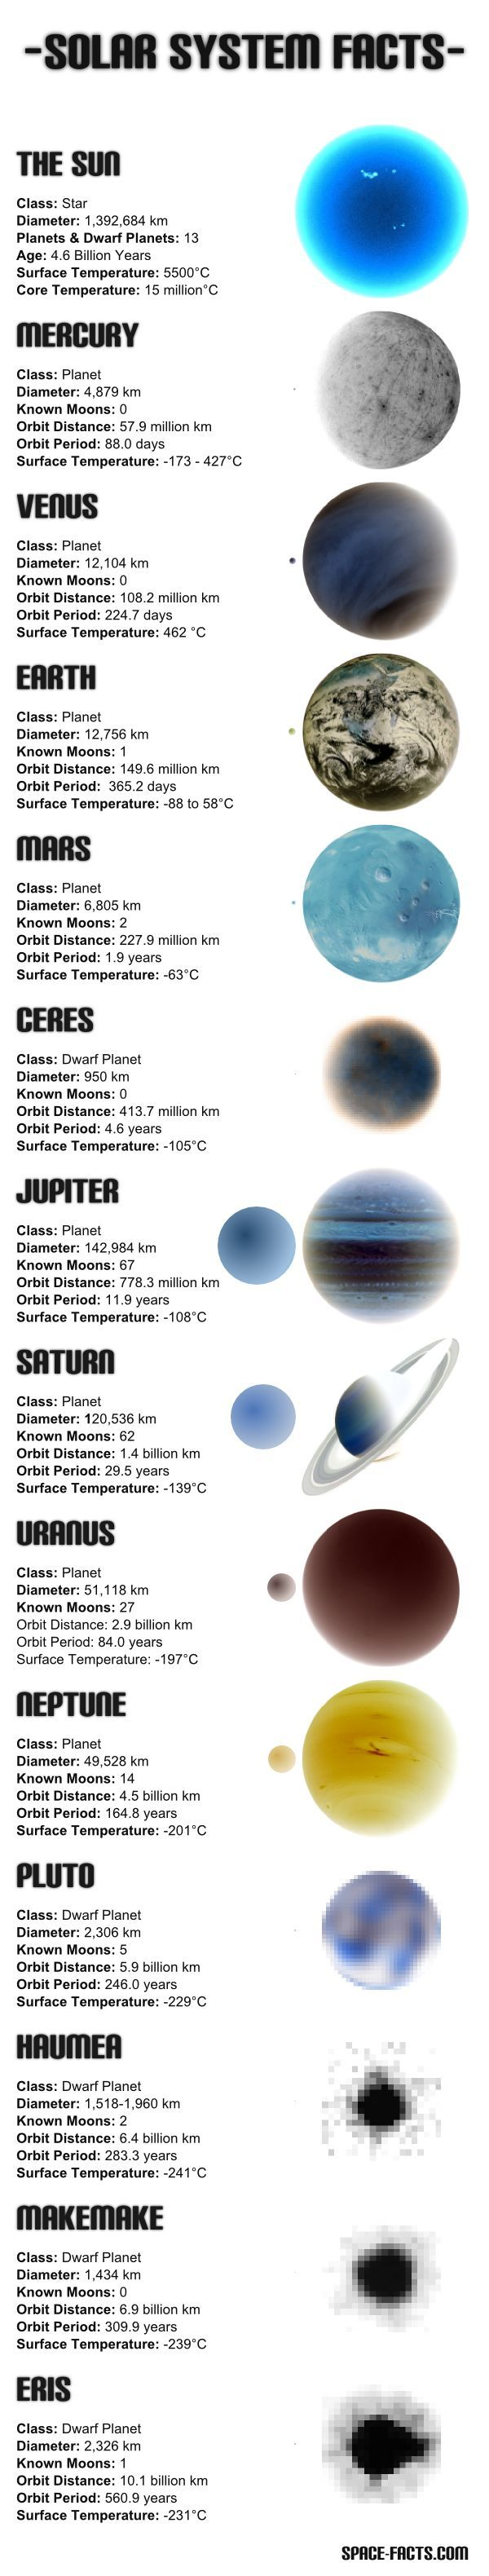 Solar System Planets & Dwarf Planets Information - Space Facts